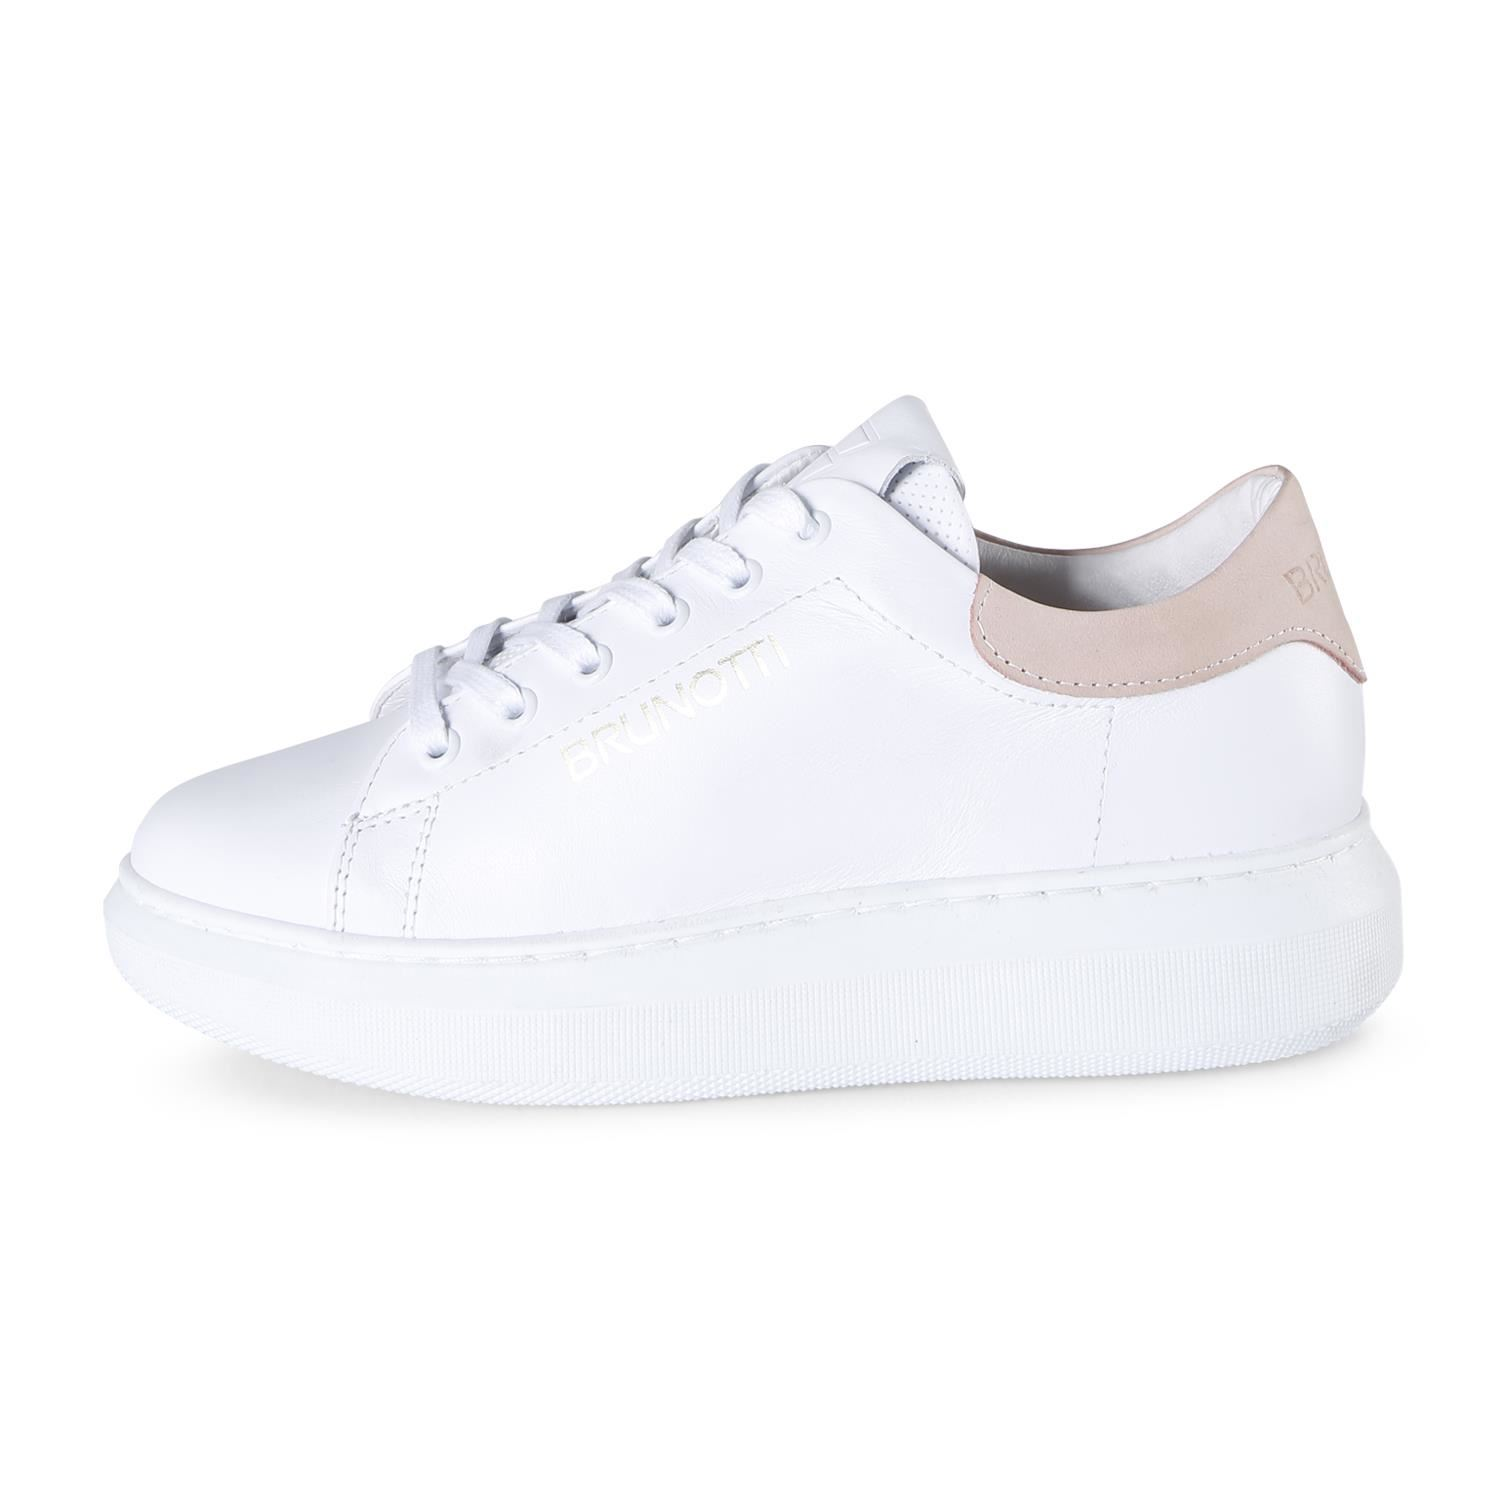 Brunotti Ericeira  (white) - women shoes - Brunotti online shop